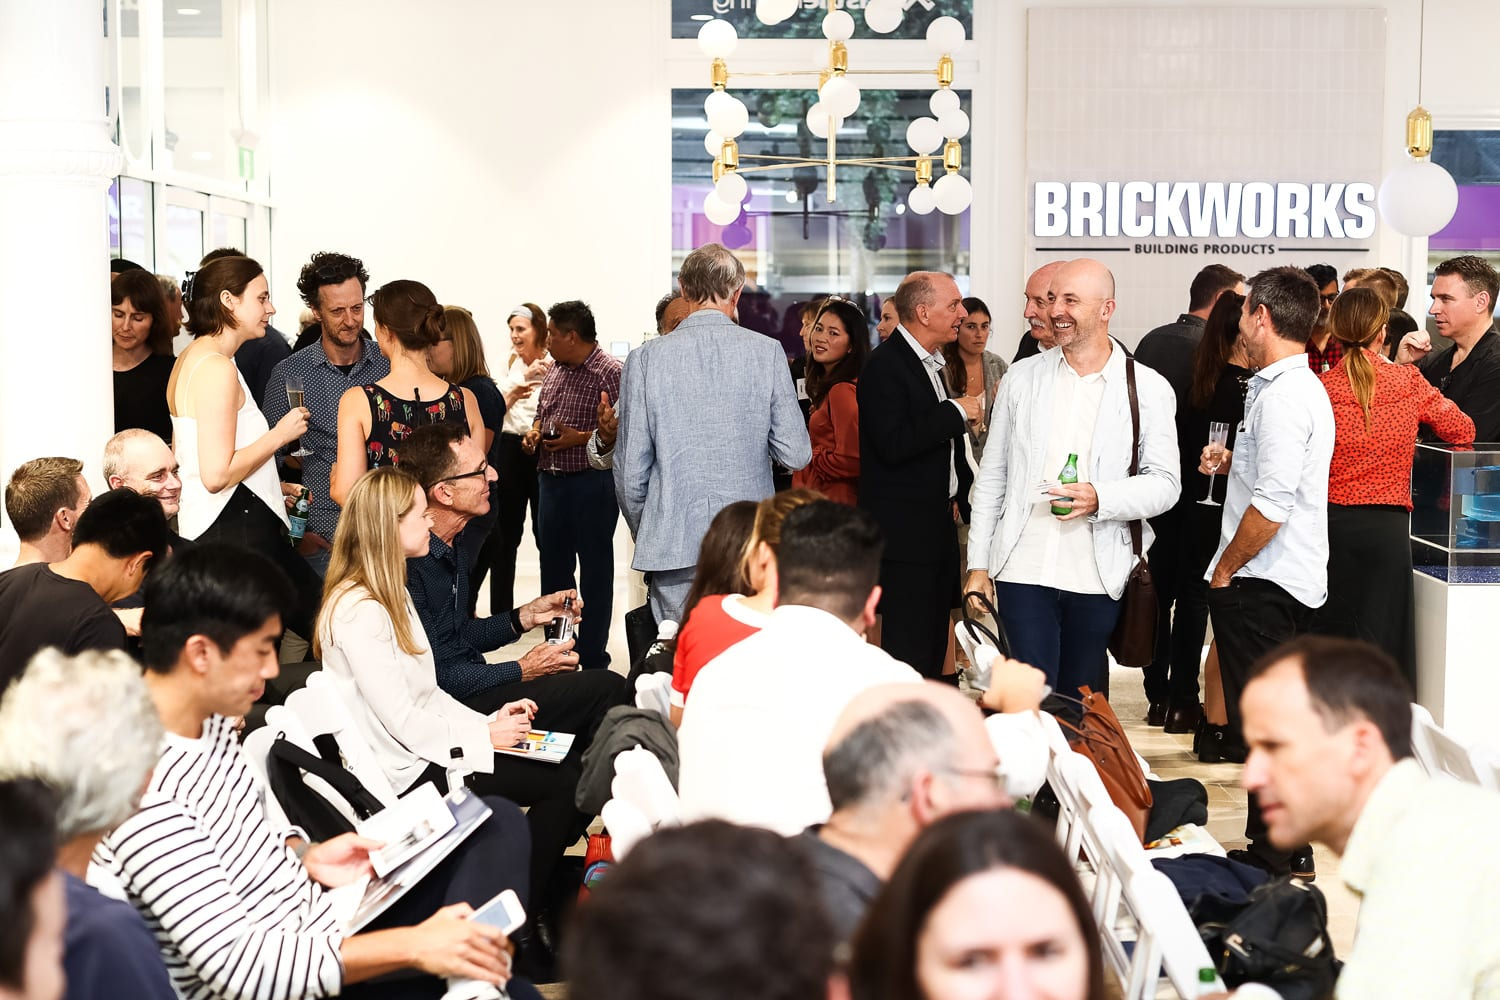 Kevin Carmody x Brickworks Event | Yellowtrace